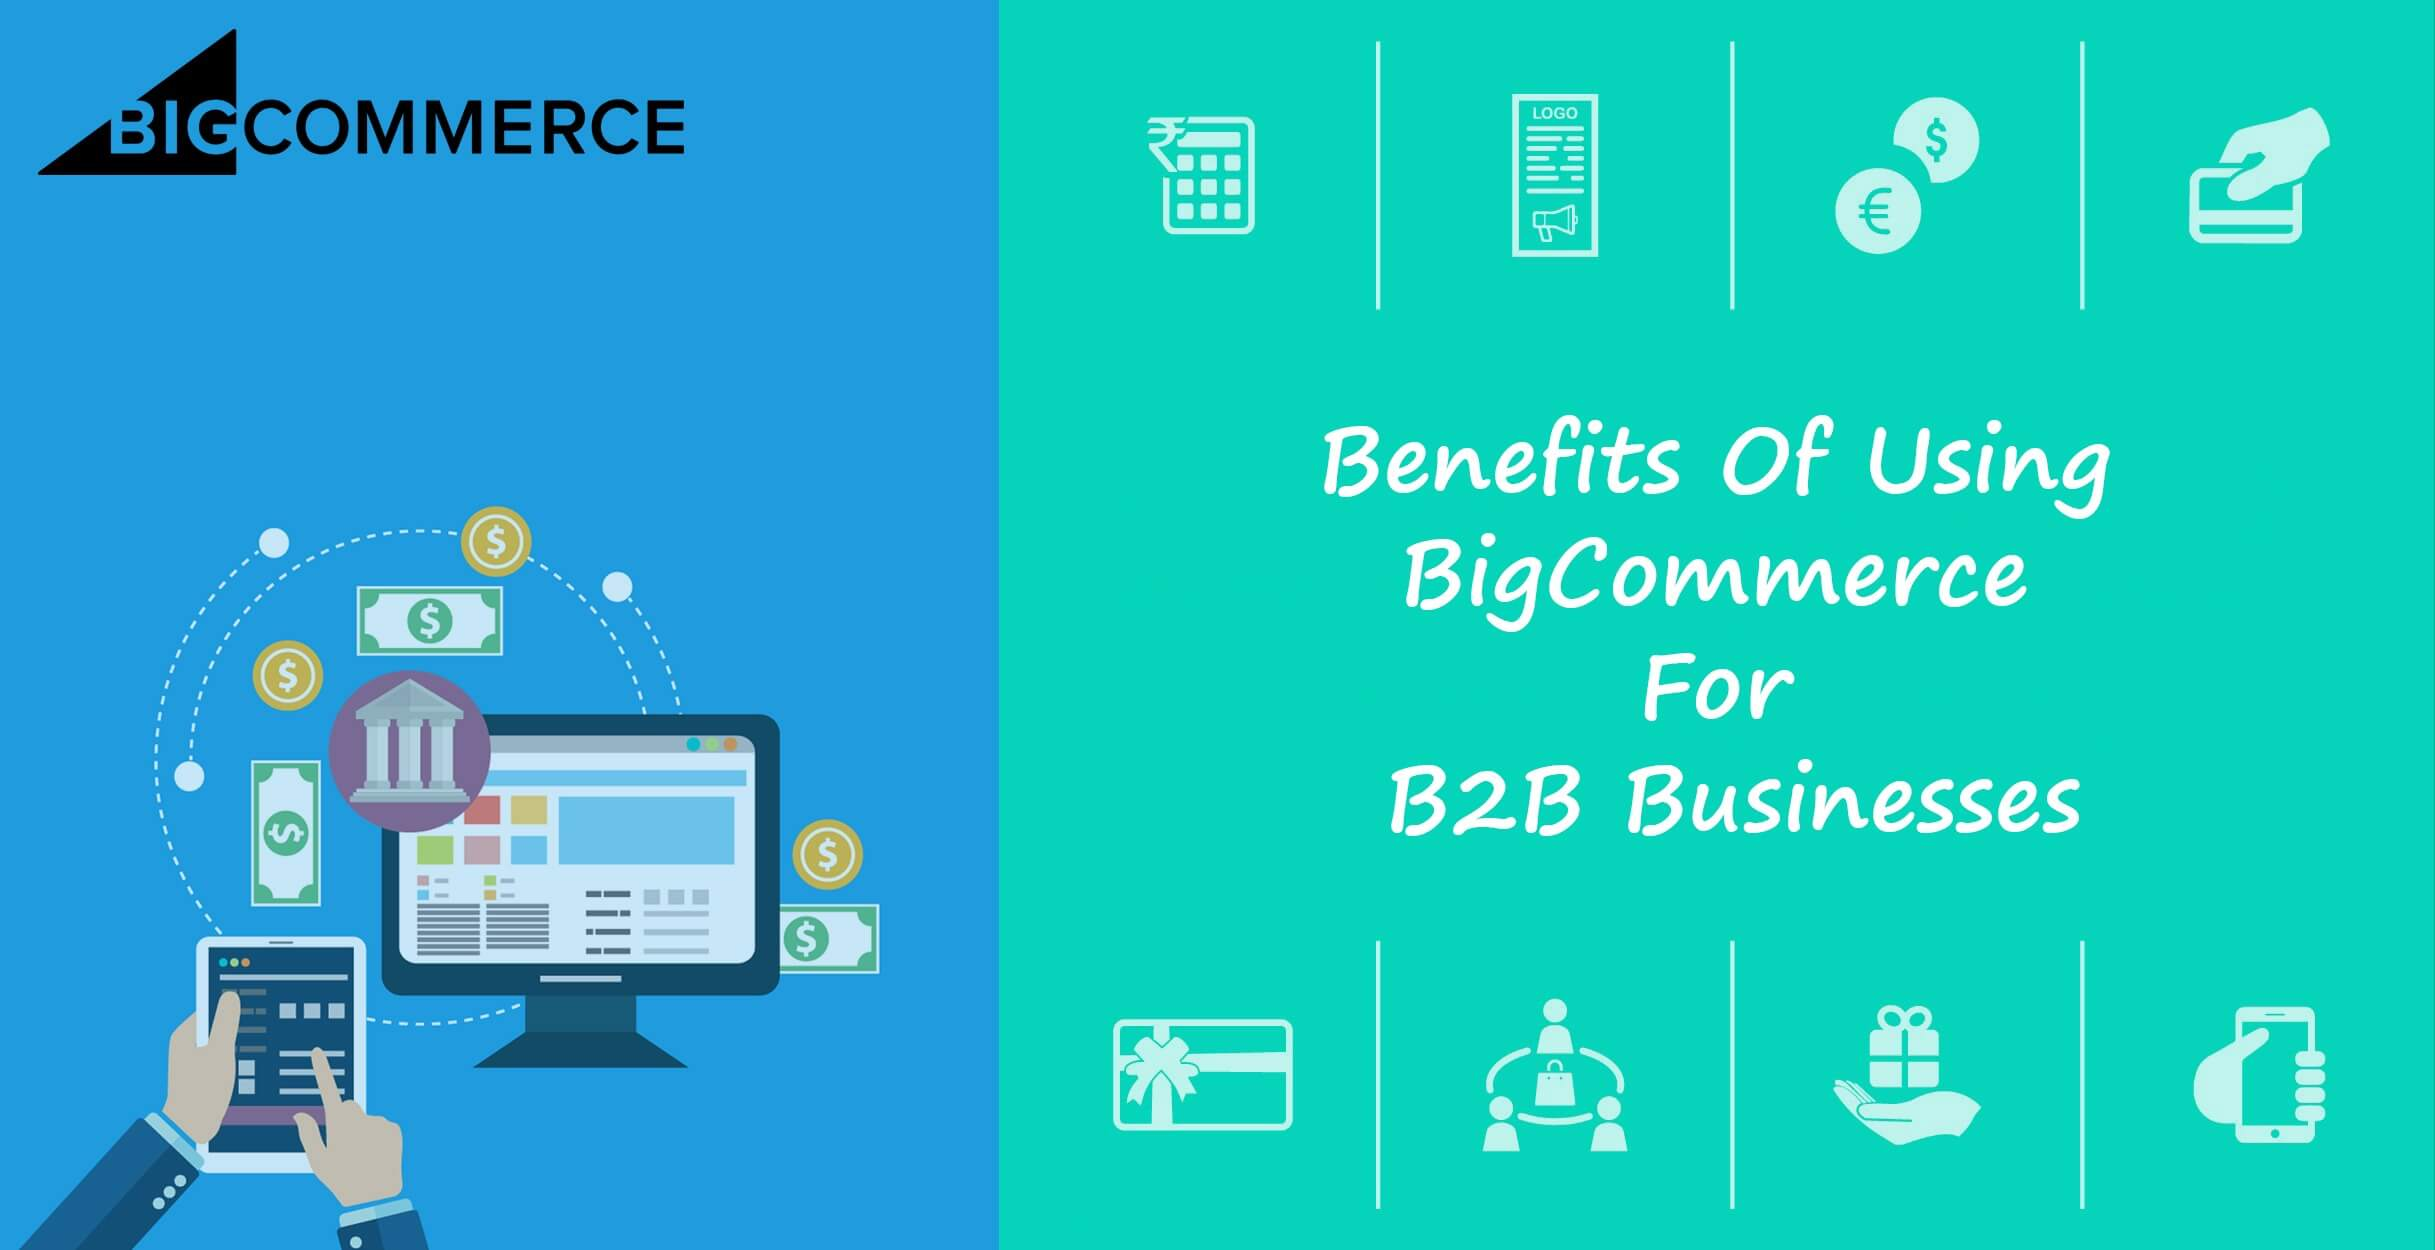 The Benefits of Using BigCommerce for B2B Businesses